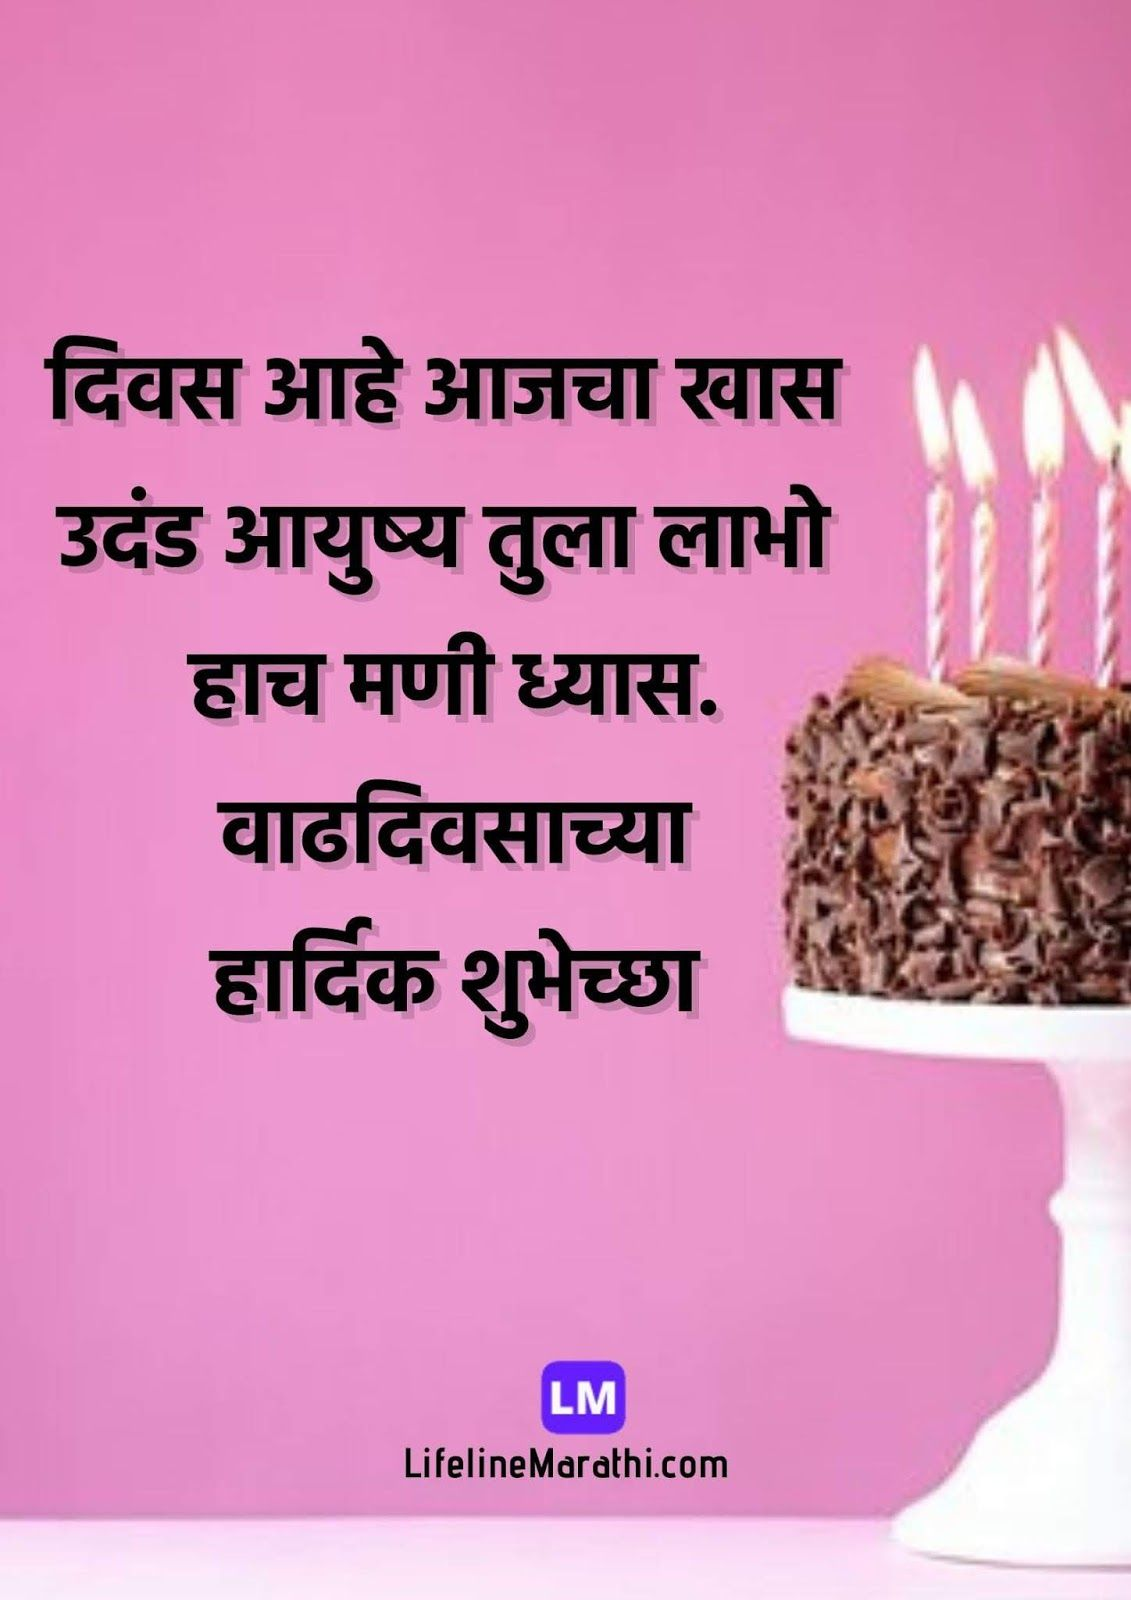 Birthday Wishes In Marathi in 2020 Birthday wishes